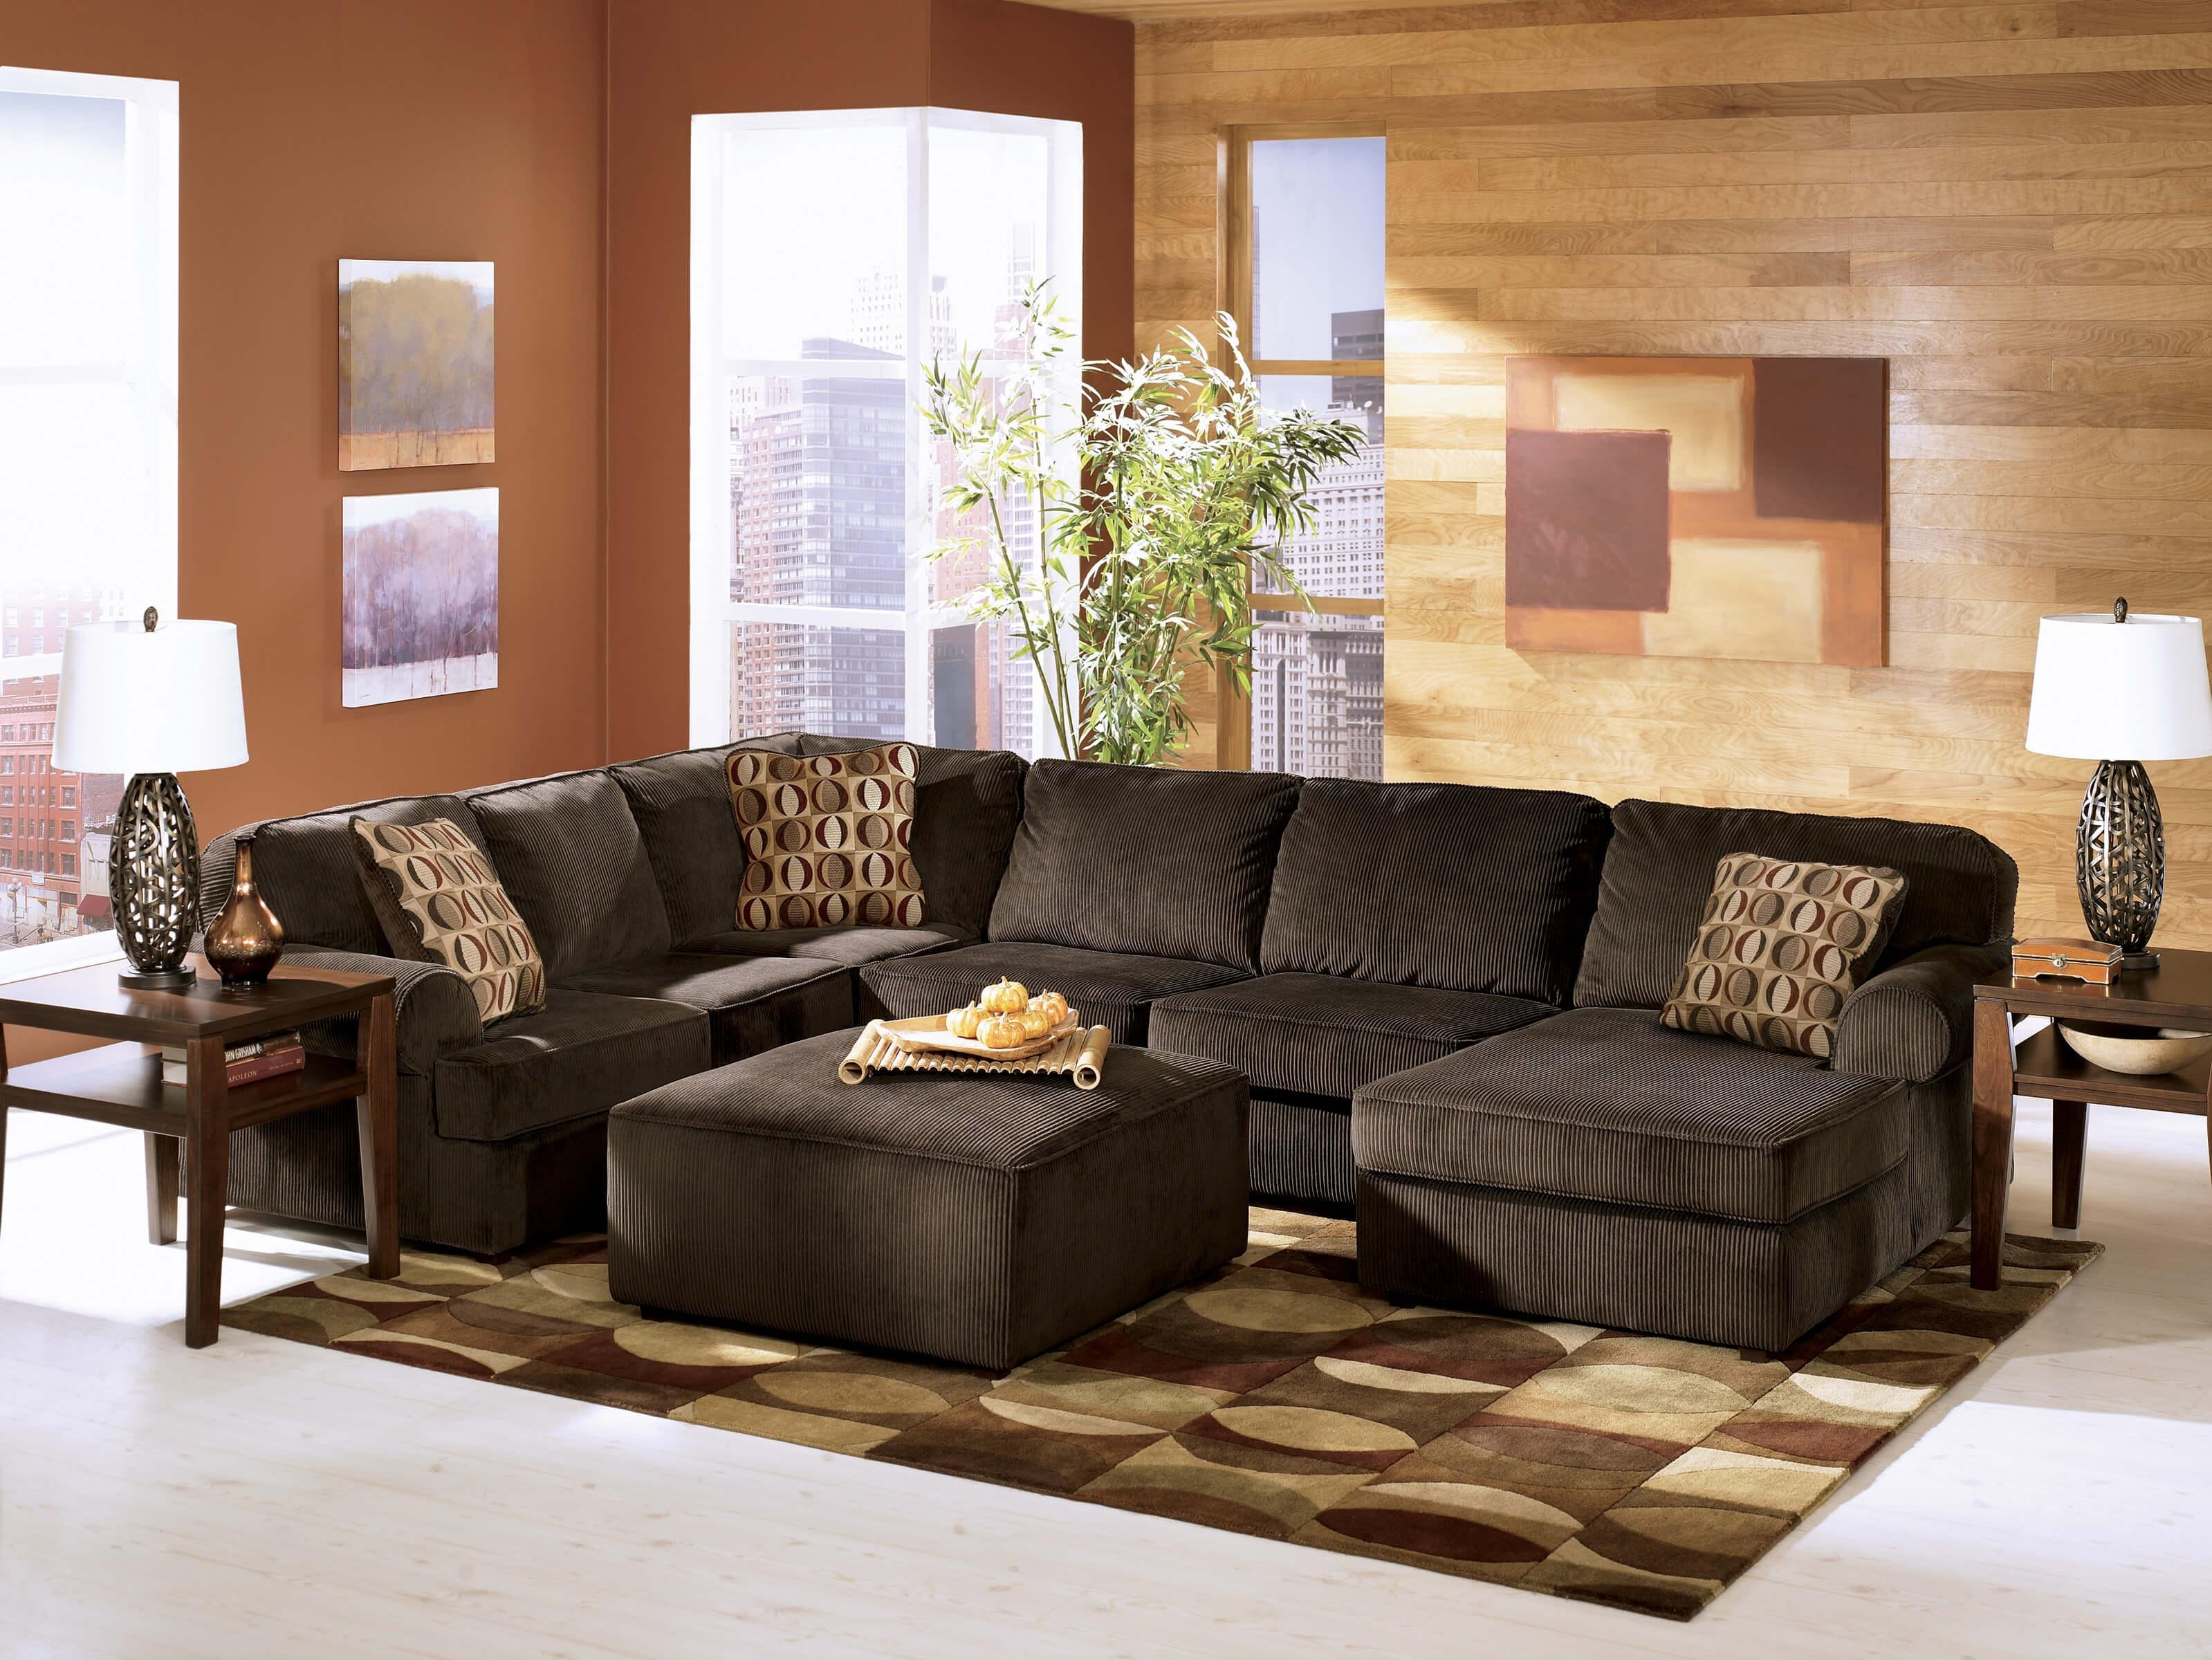 corey chocolate brown sectional sofa green chair covers 15 43 choices of ideas